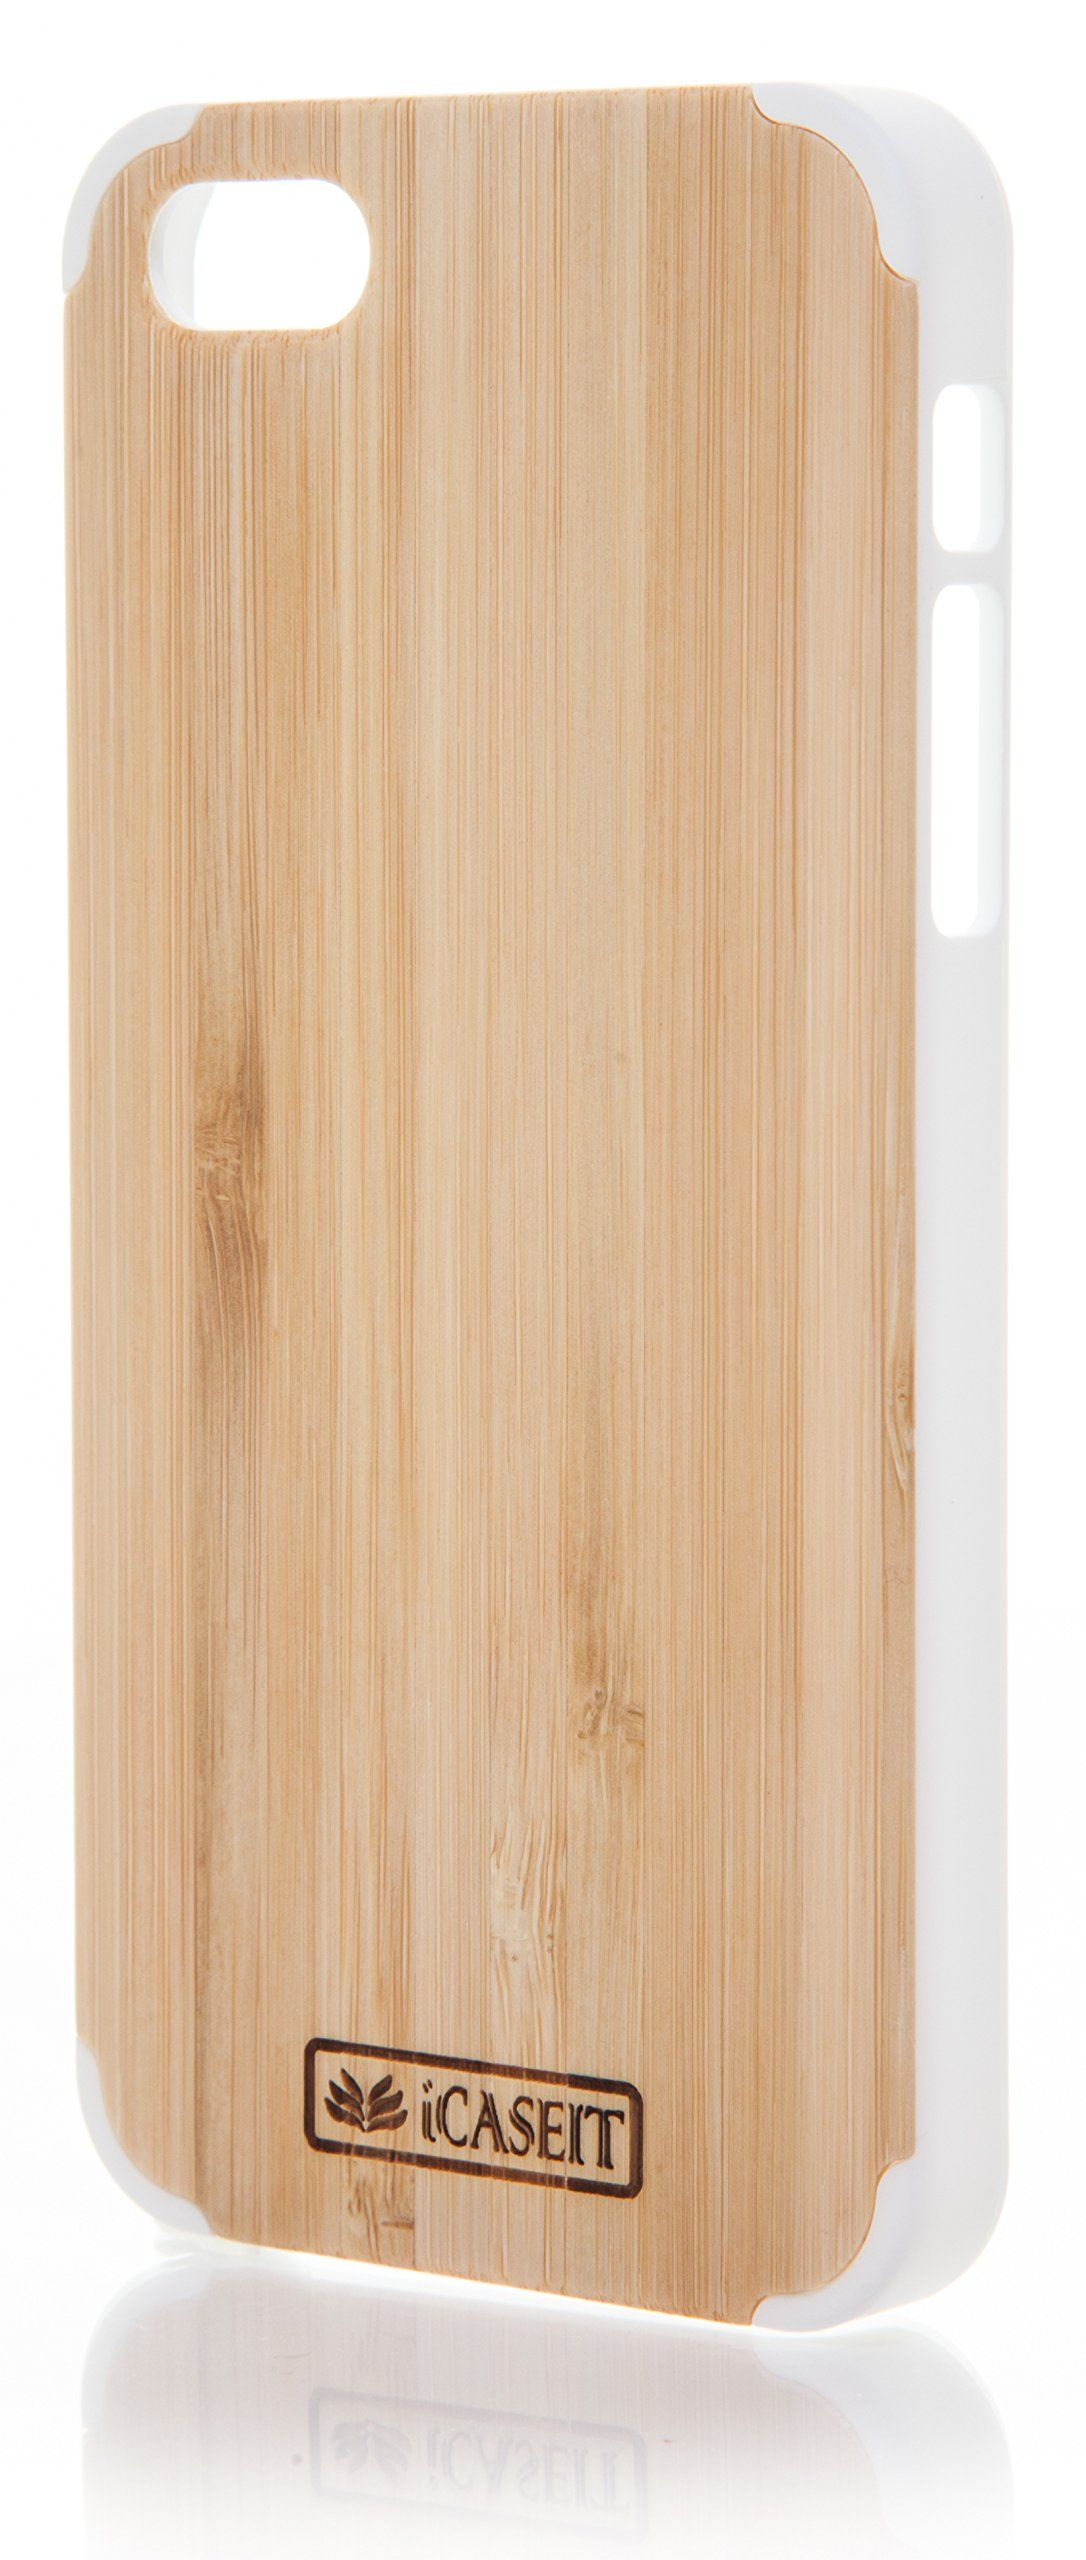 e7fe07d2c72 iCASEIT Wood iPhone Case - Genuinely Natural, Unique & Premium quality for  iPhone 5 / 5S - Bamboo / White